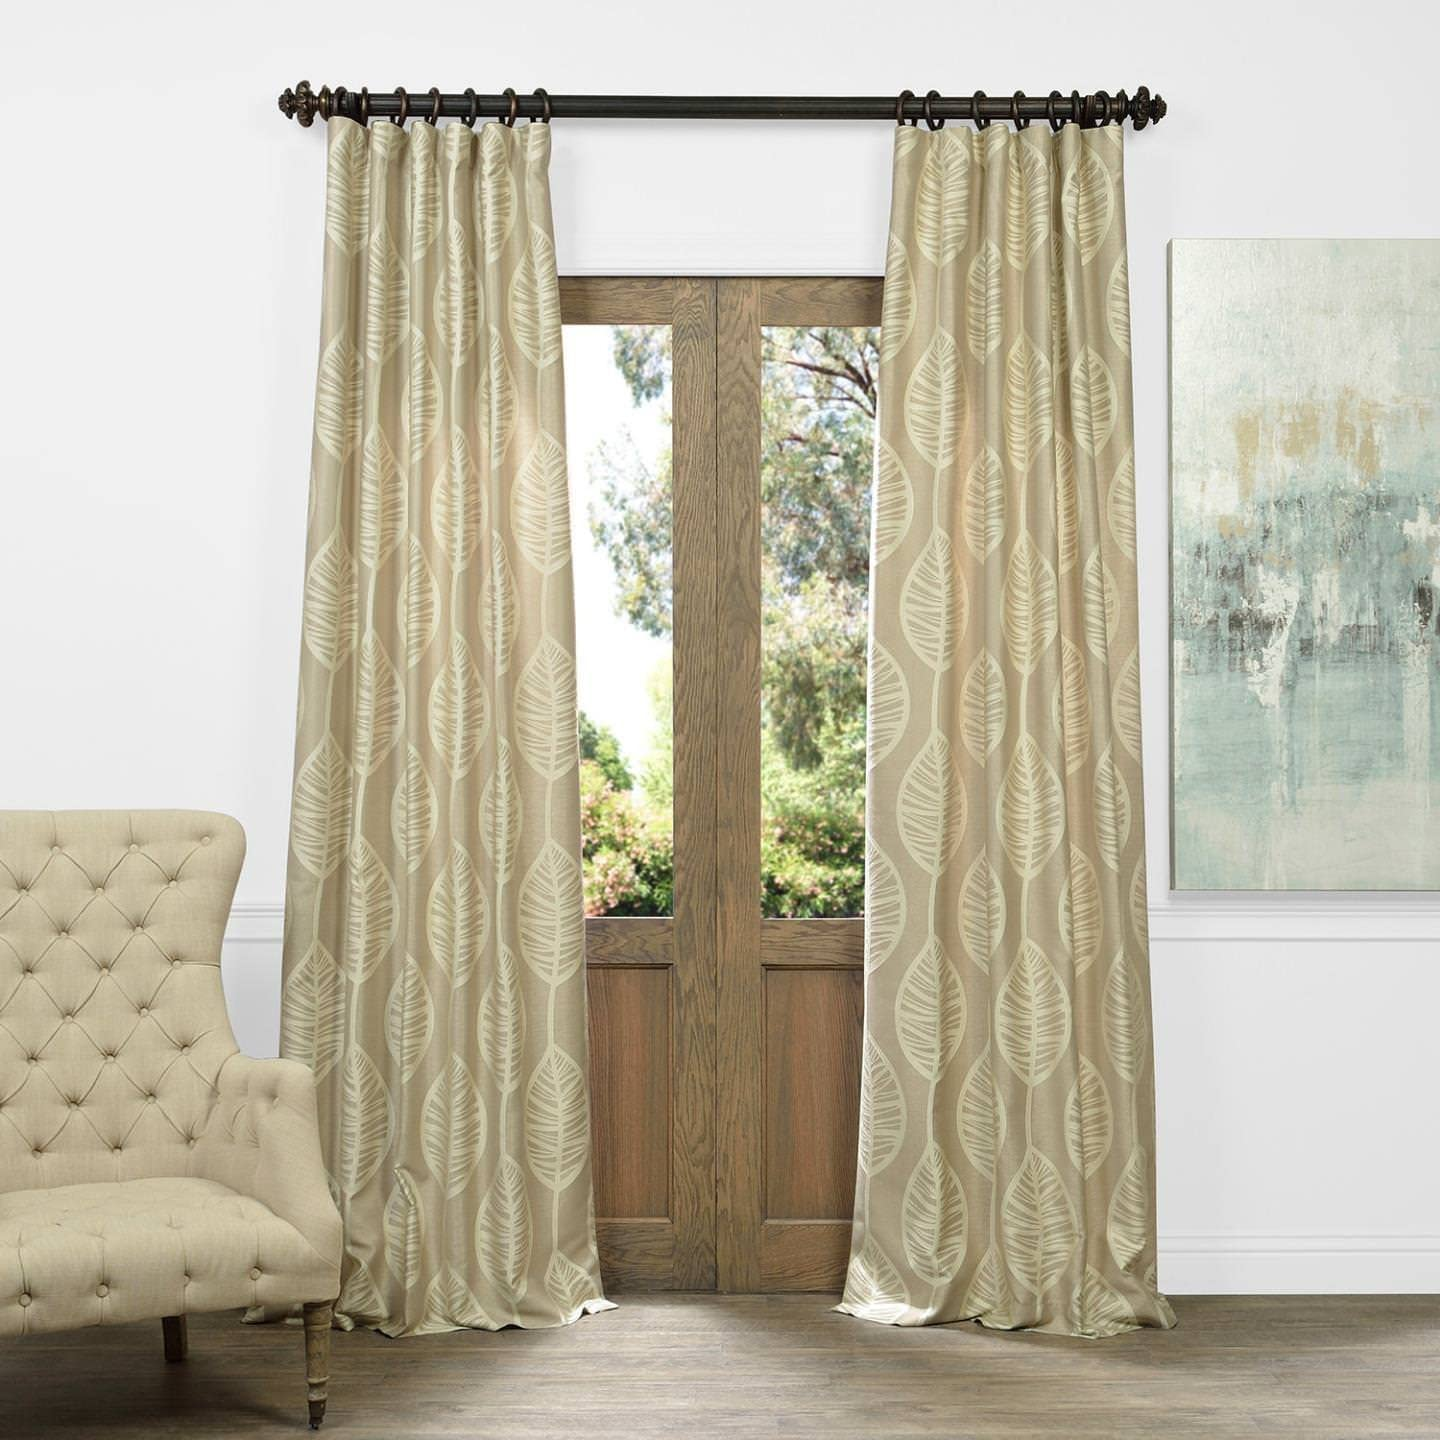 HPD Half Price Drapes JQCH-AR108201-84 Faux Silk Jacquard Curtain 1 Panel , 50 X 84, Opus Natural